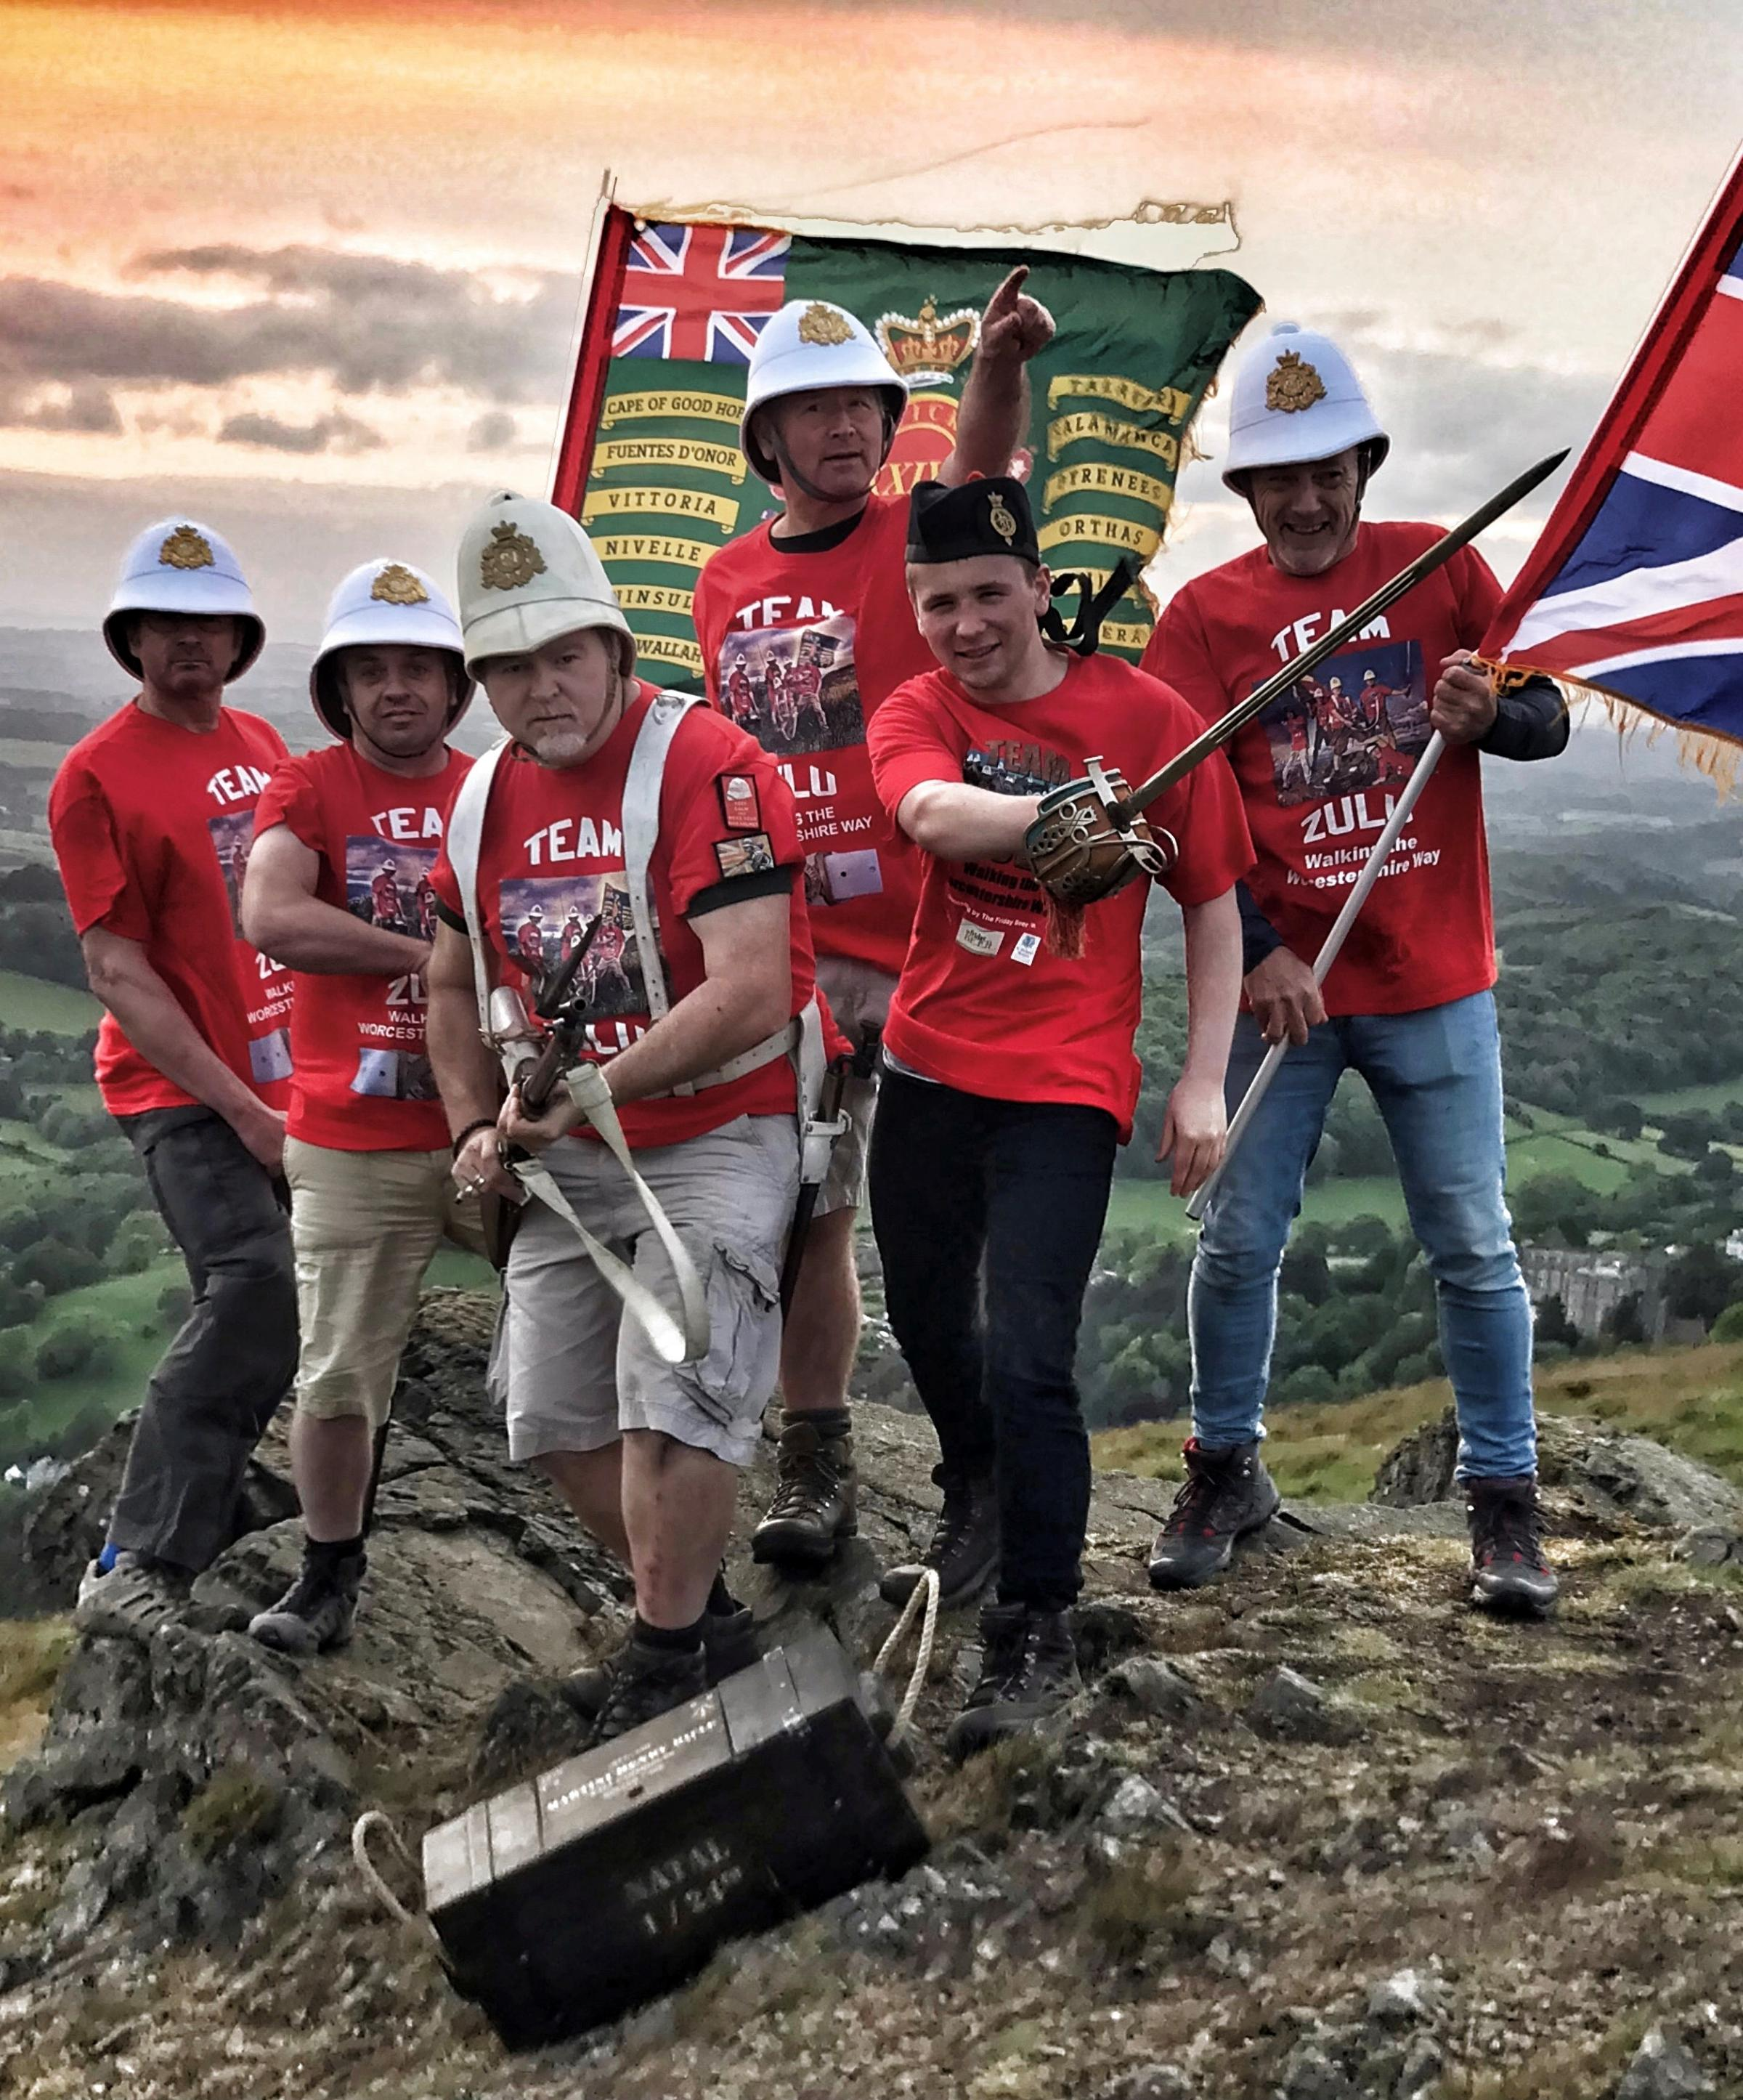 Team Zulu returns to tackle the Worcestershire Way for ninth time